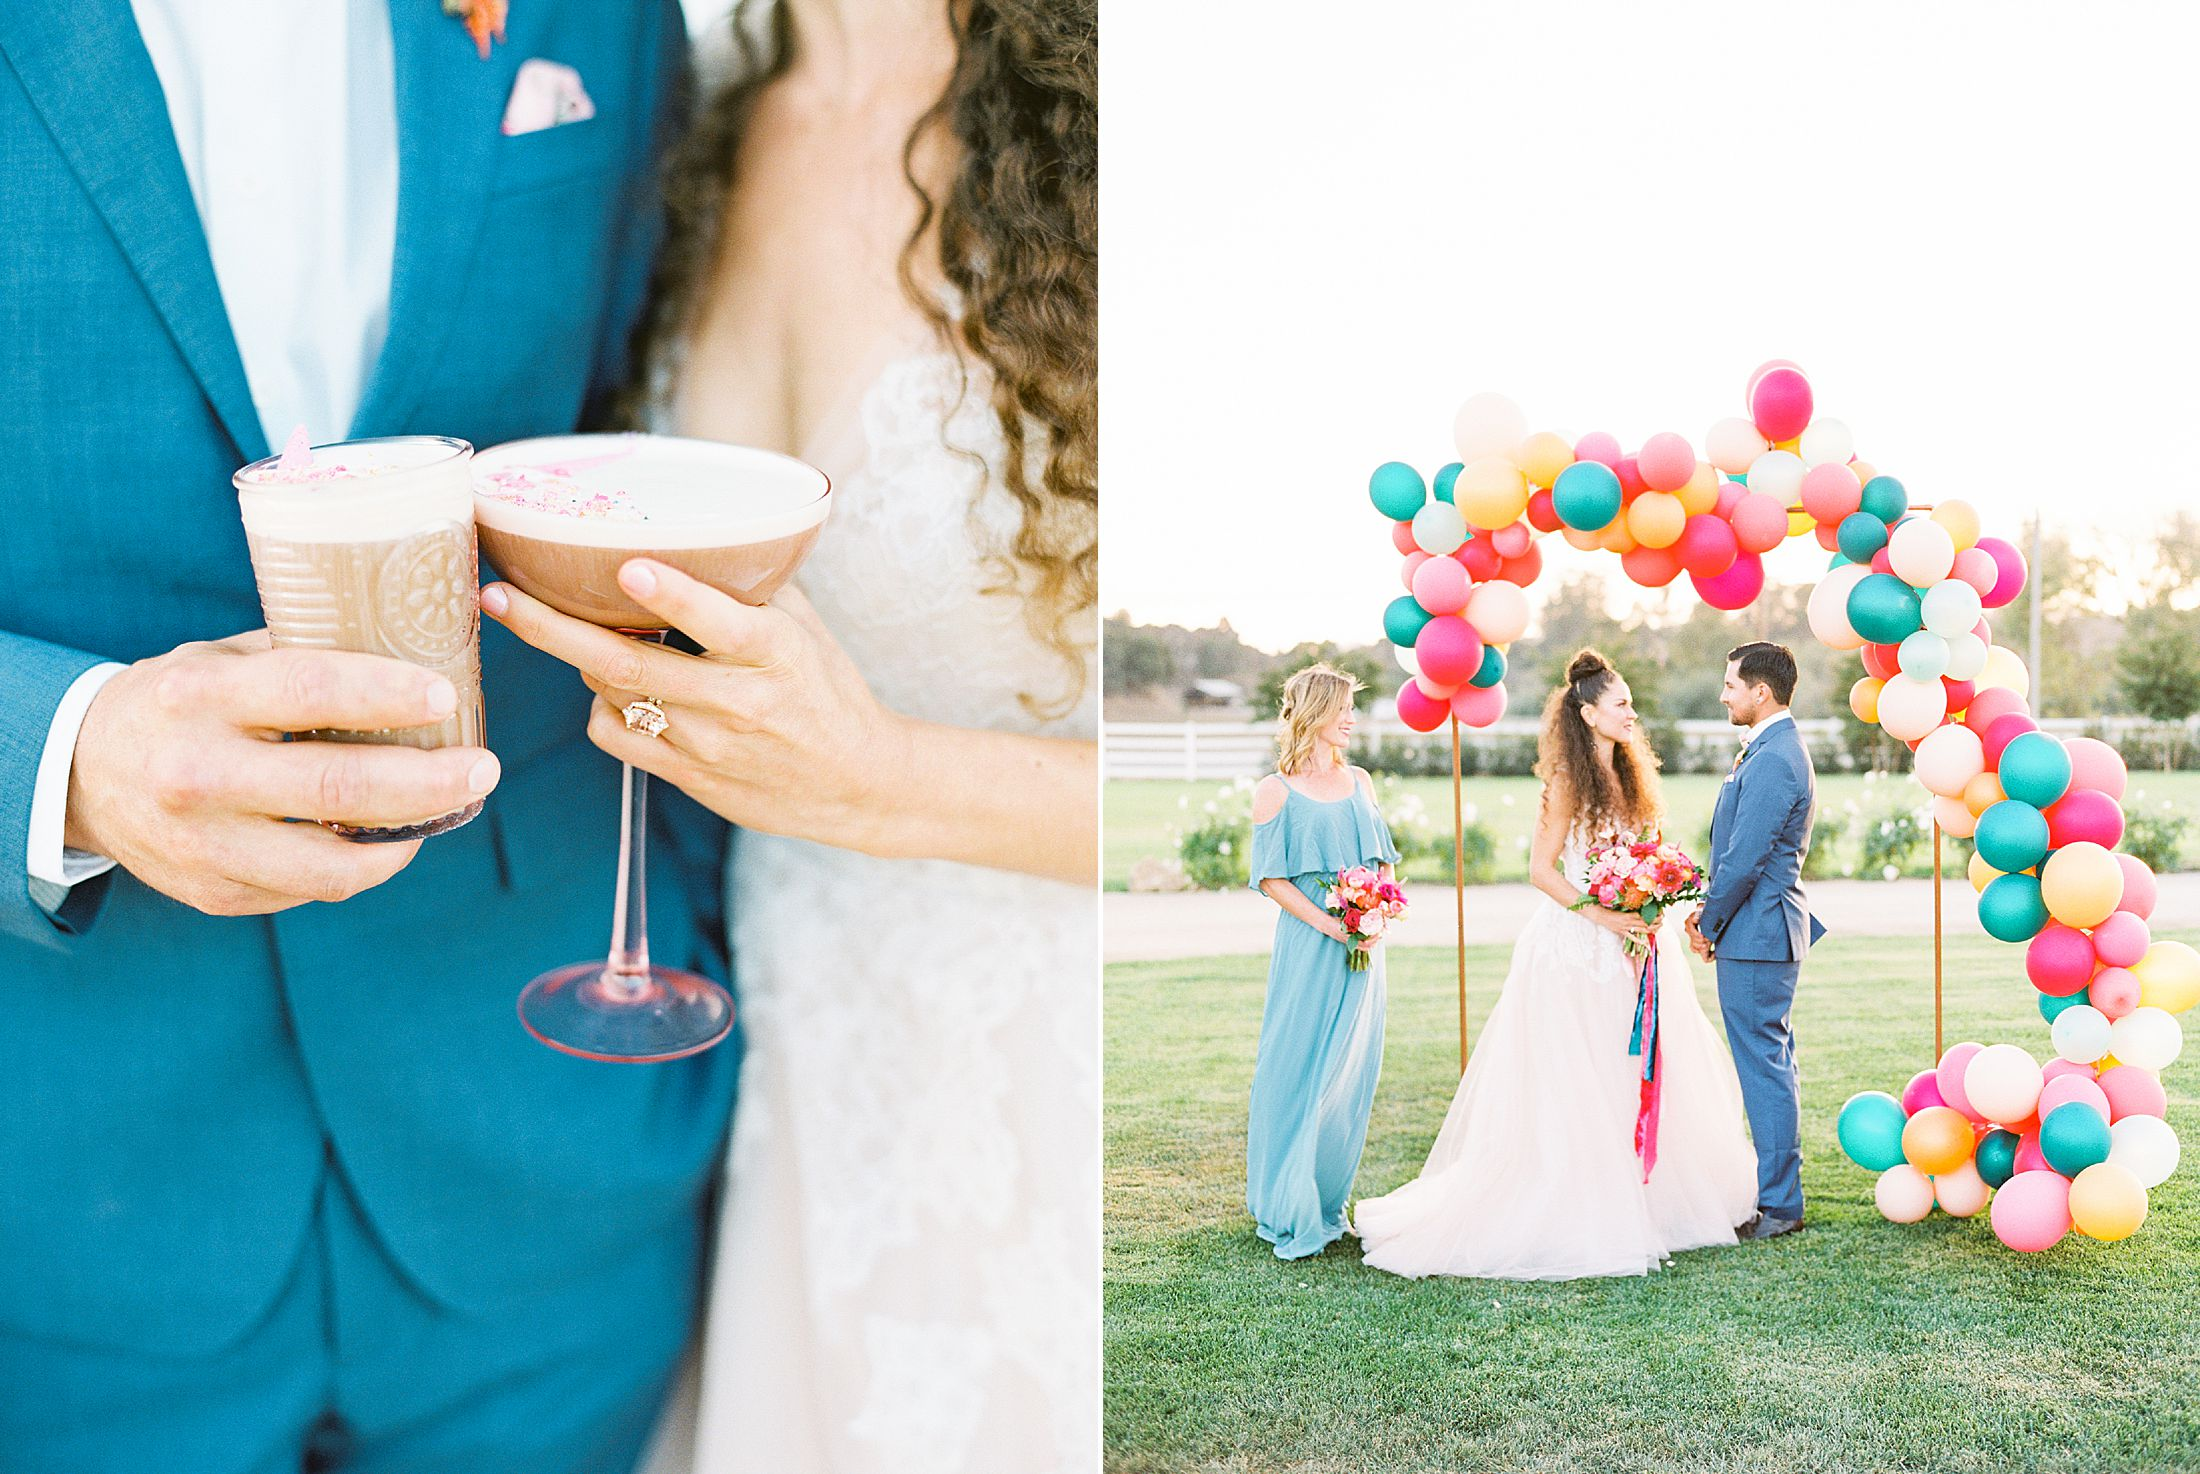 White Barn Edna Valley Wedding Inspiration - San Luis Obispo Wedding - Featured on Green Wedding Shoes - Ashley Baumgartner - FM Events SLO - SLO Wedding Photographer_0007.jpg